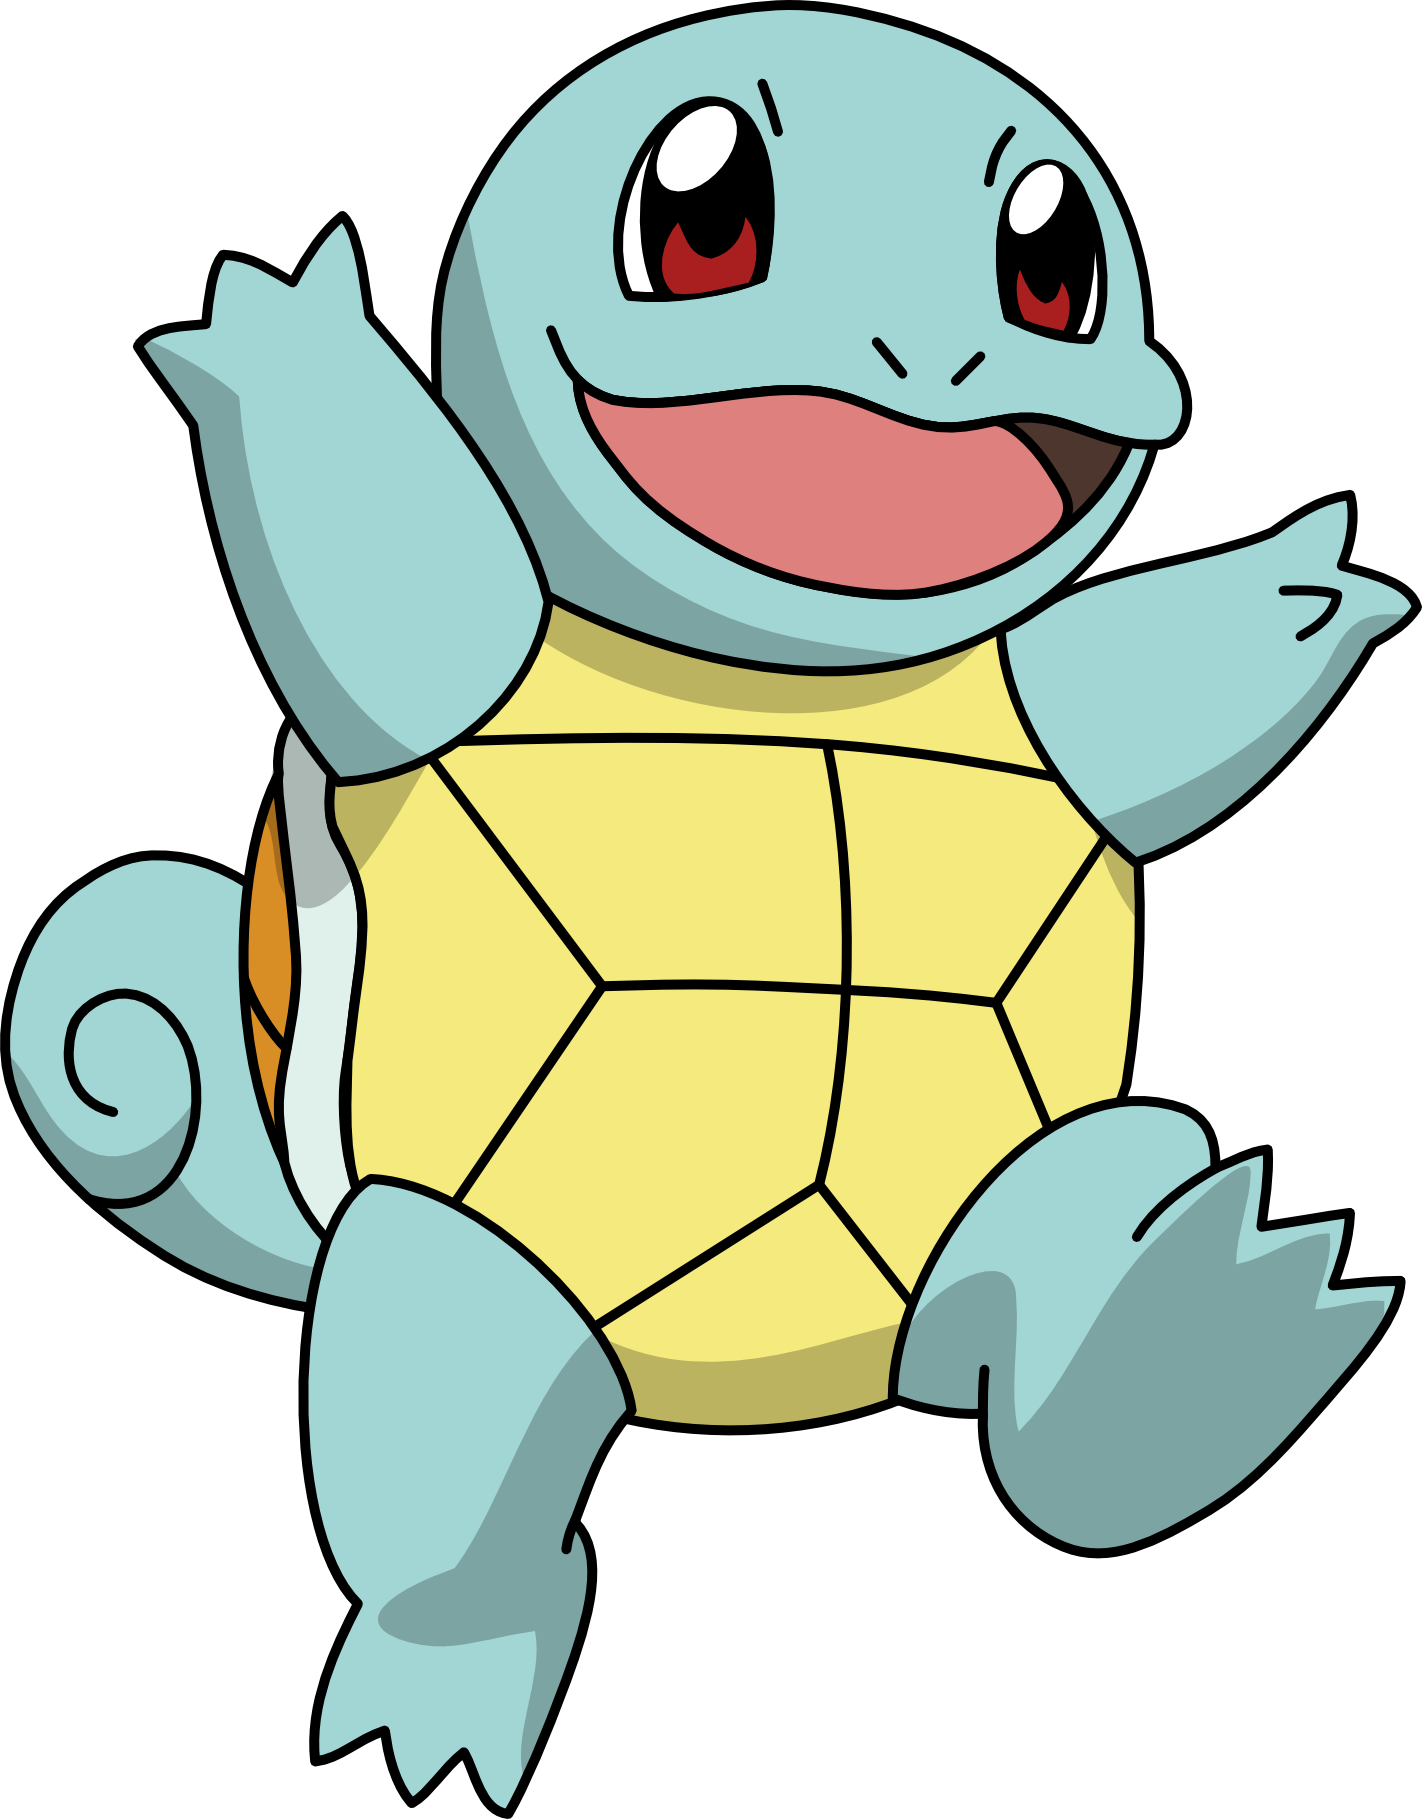 squirtle_by_mighty355-d7dwh31.png (1422×1819)